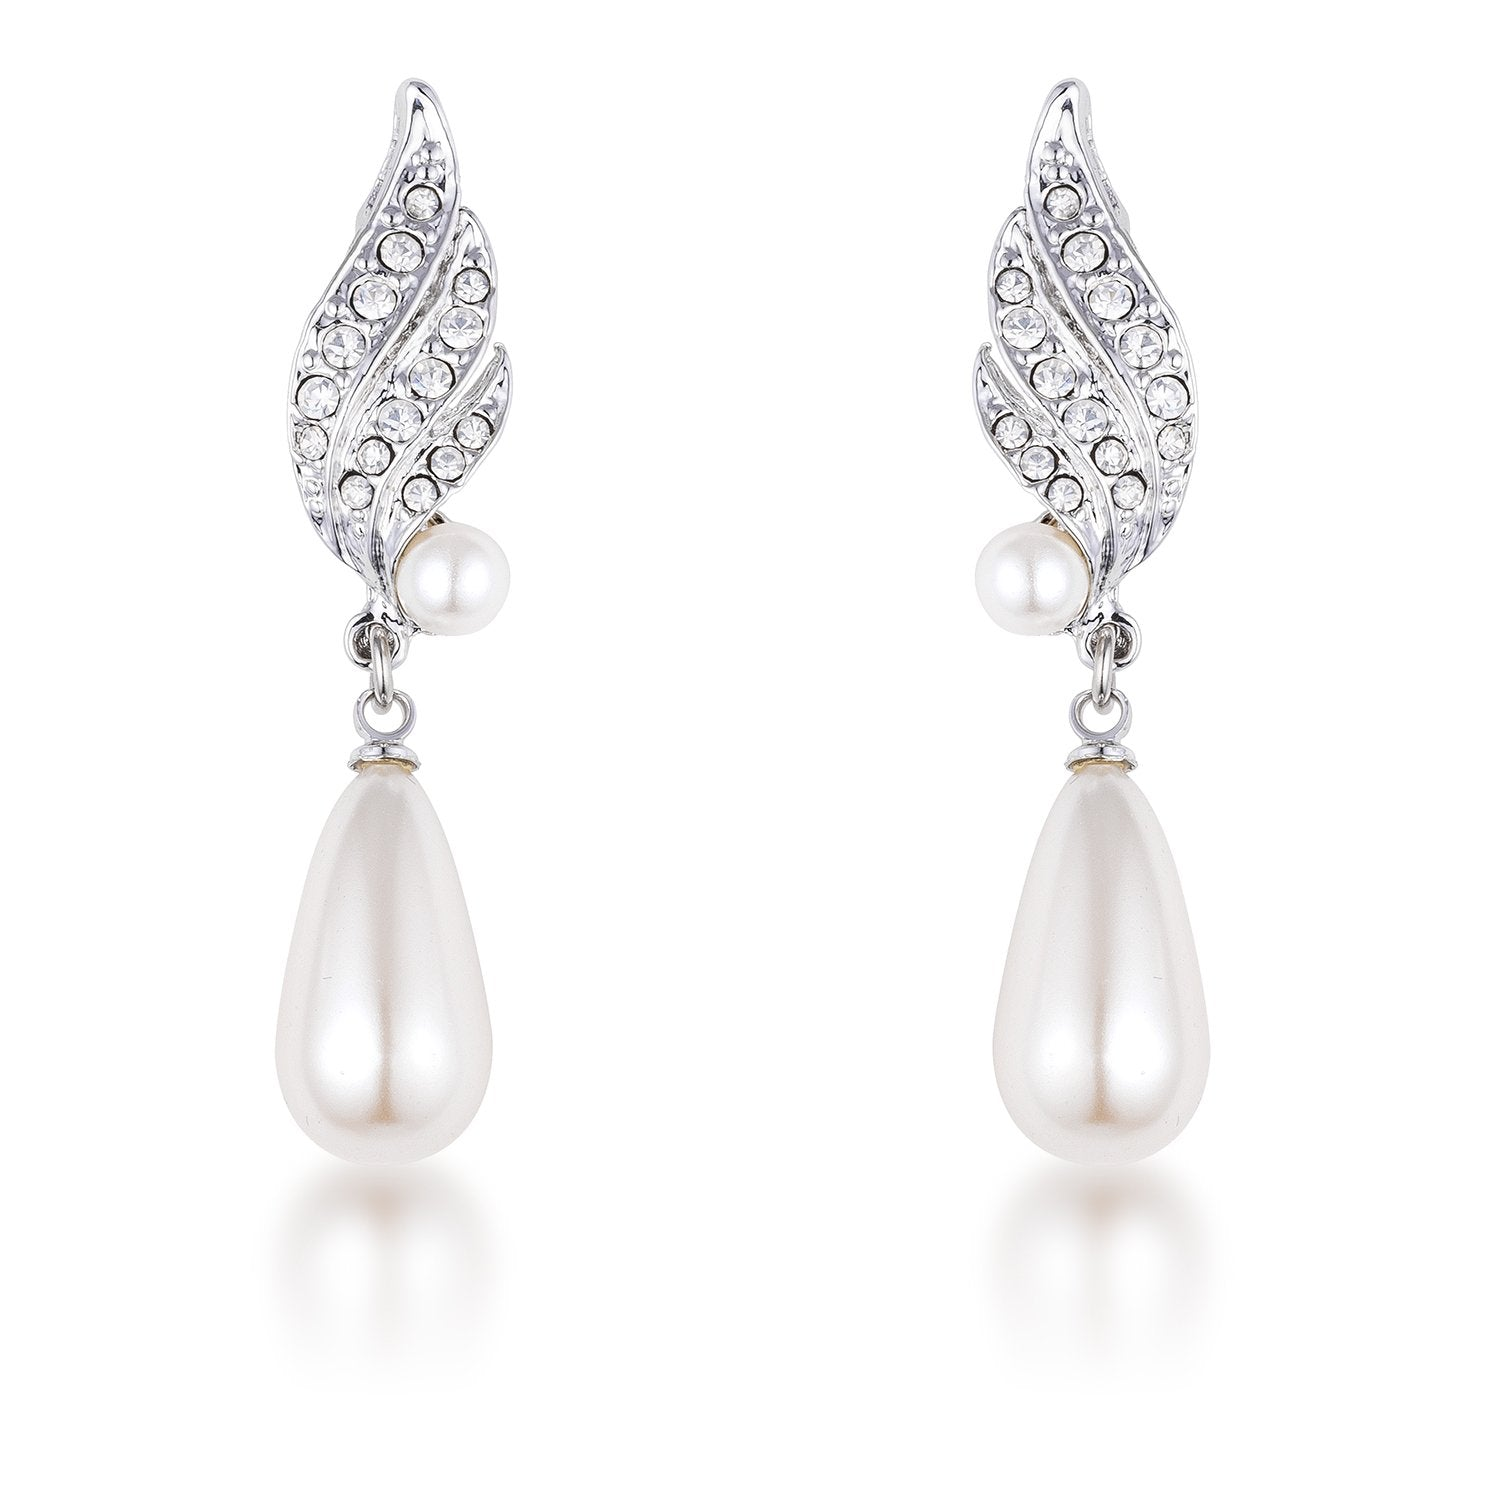 Rhodium Plated Simulated Pearl and Crystal Bridal Drop Earrings - E01964R-C84